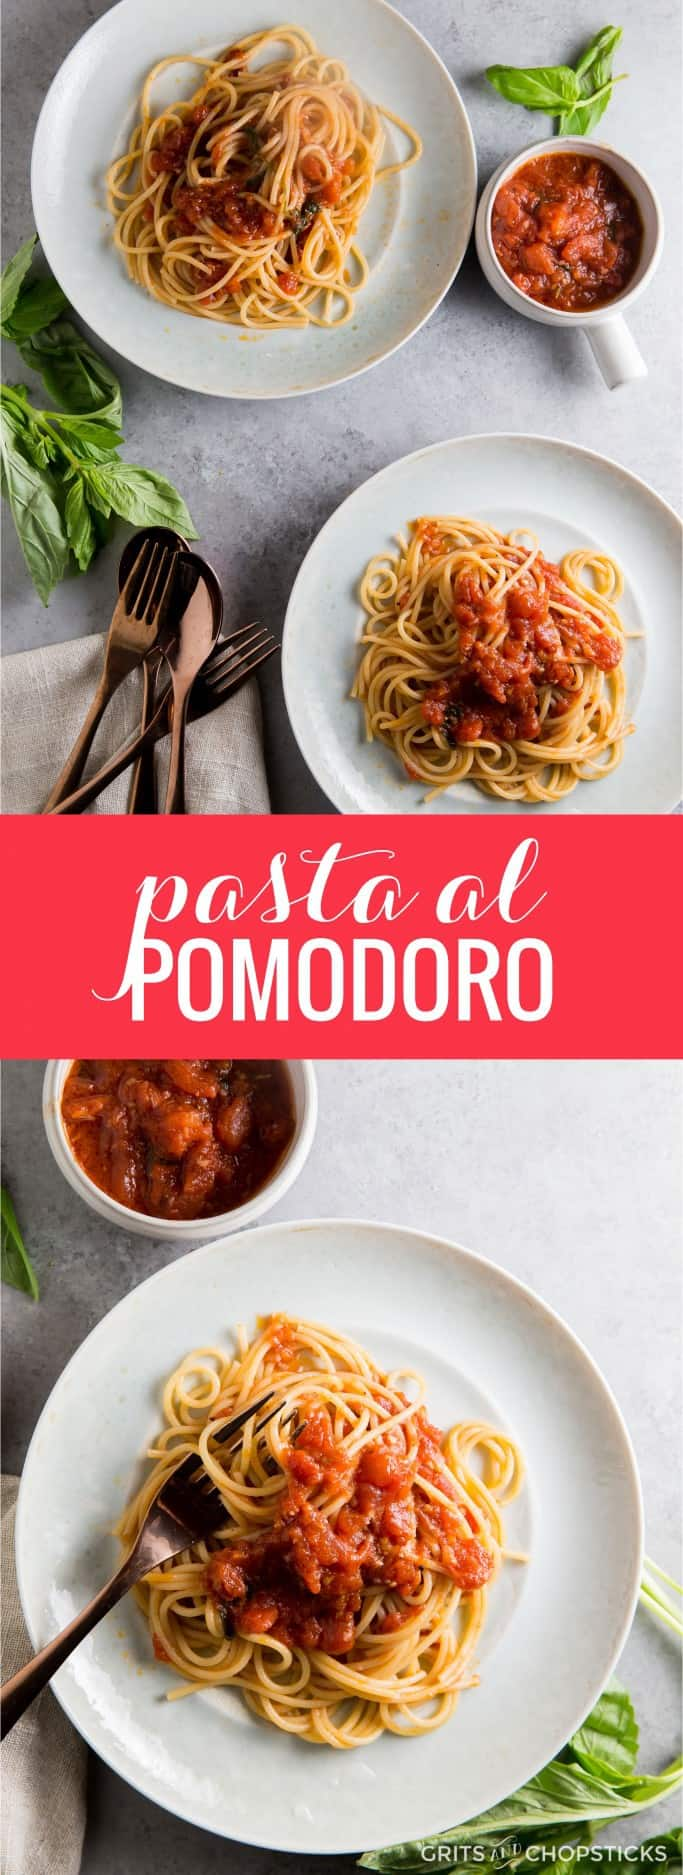 Pasta al pomodoro (pasta with tomato sauce) is a simple, rustic meal that is ready in less than 30 minutes. With a simple side salad, this is a great, filling weeknight meal